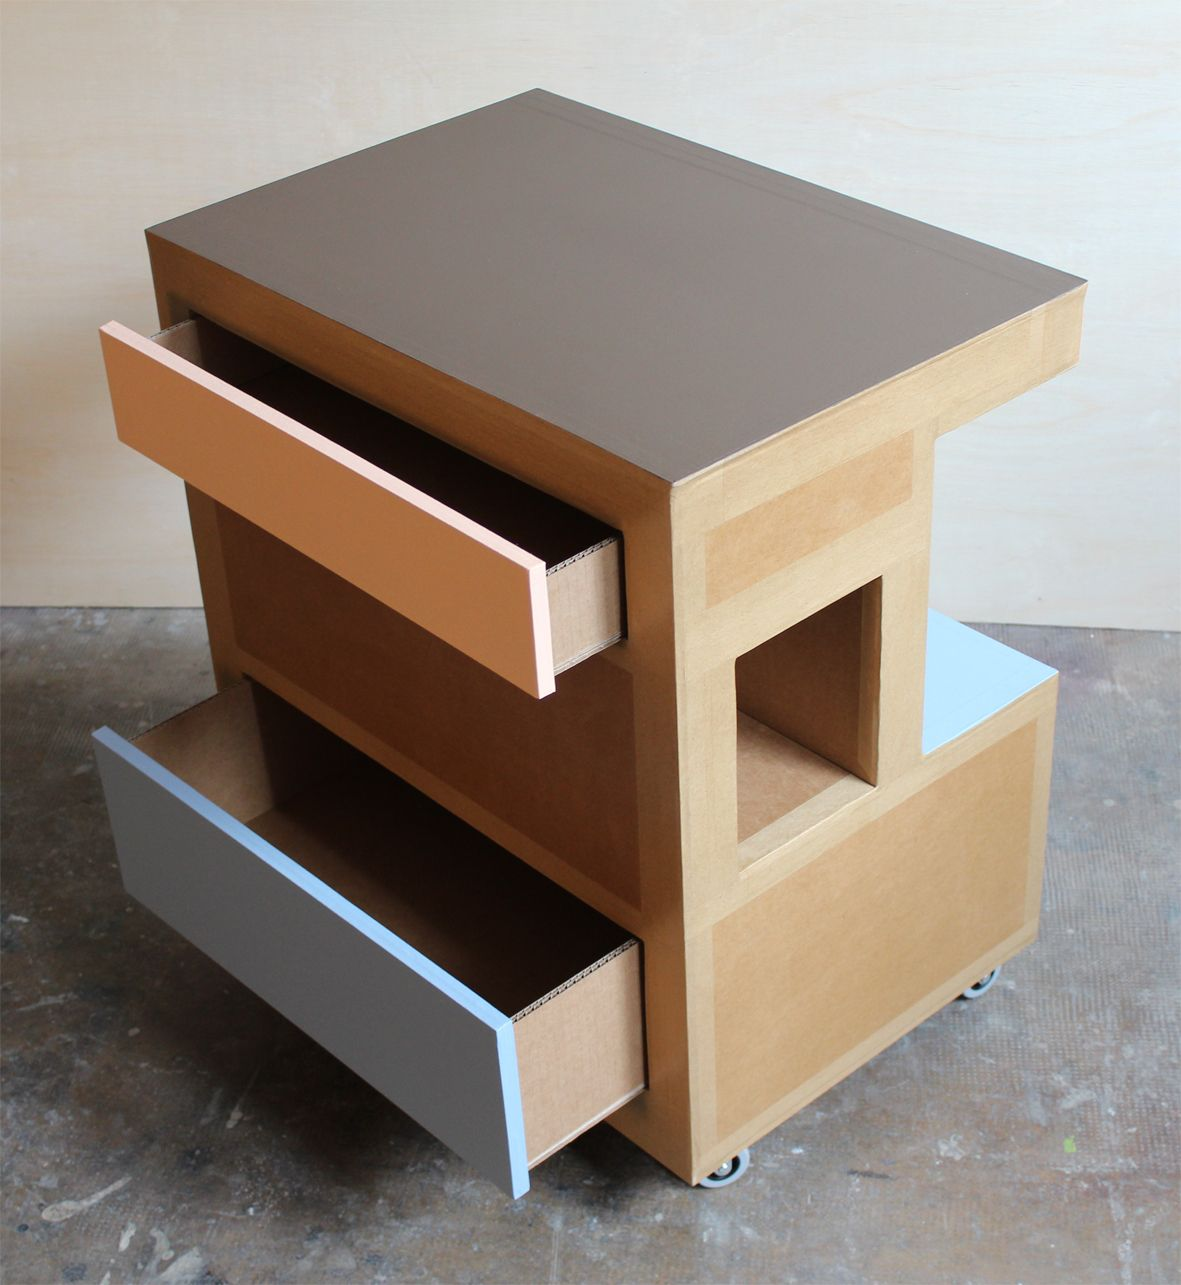 Blog De Decoration Interieur Quotblog Sur Les Meuble En Carton Design Mobilier Original